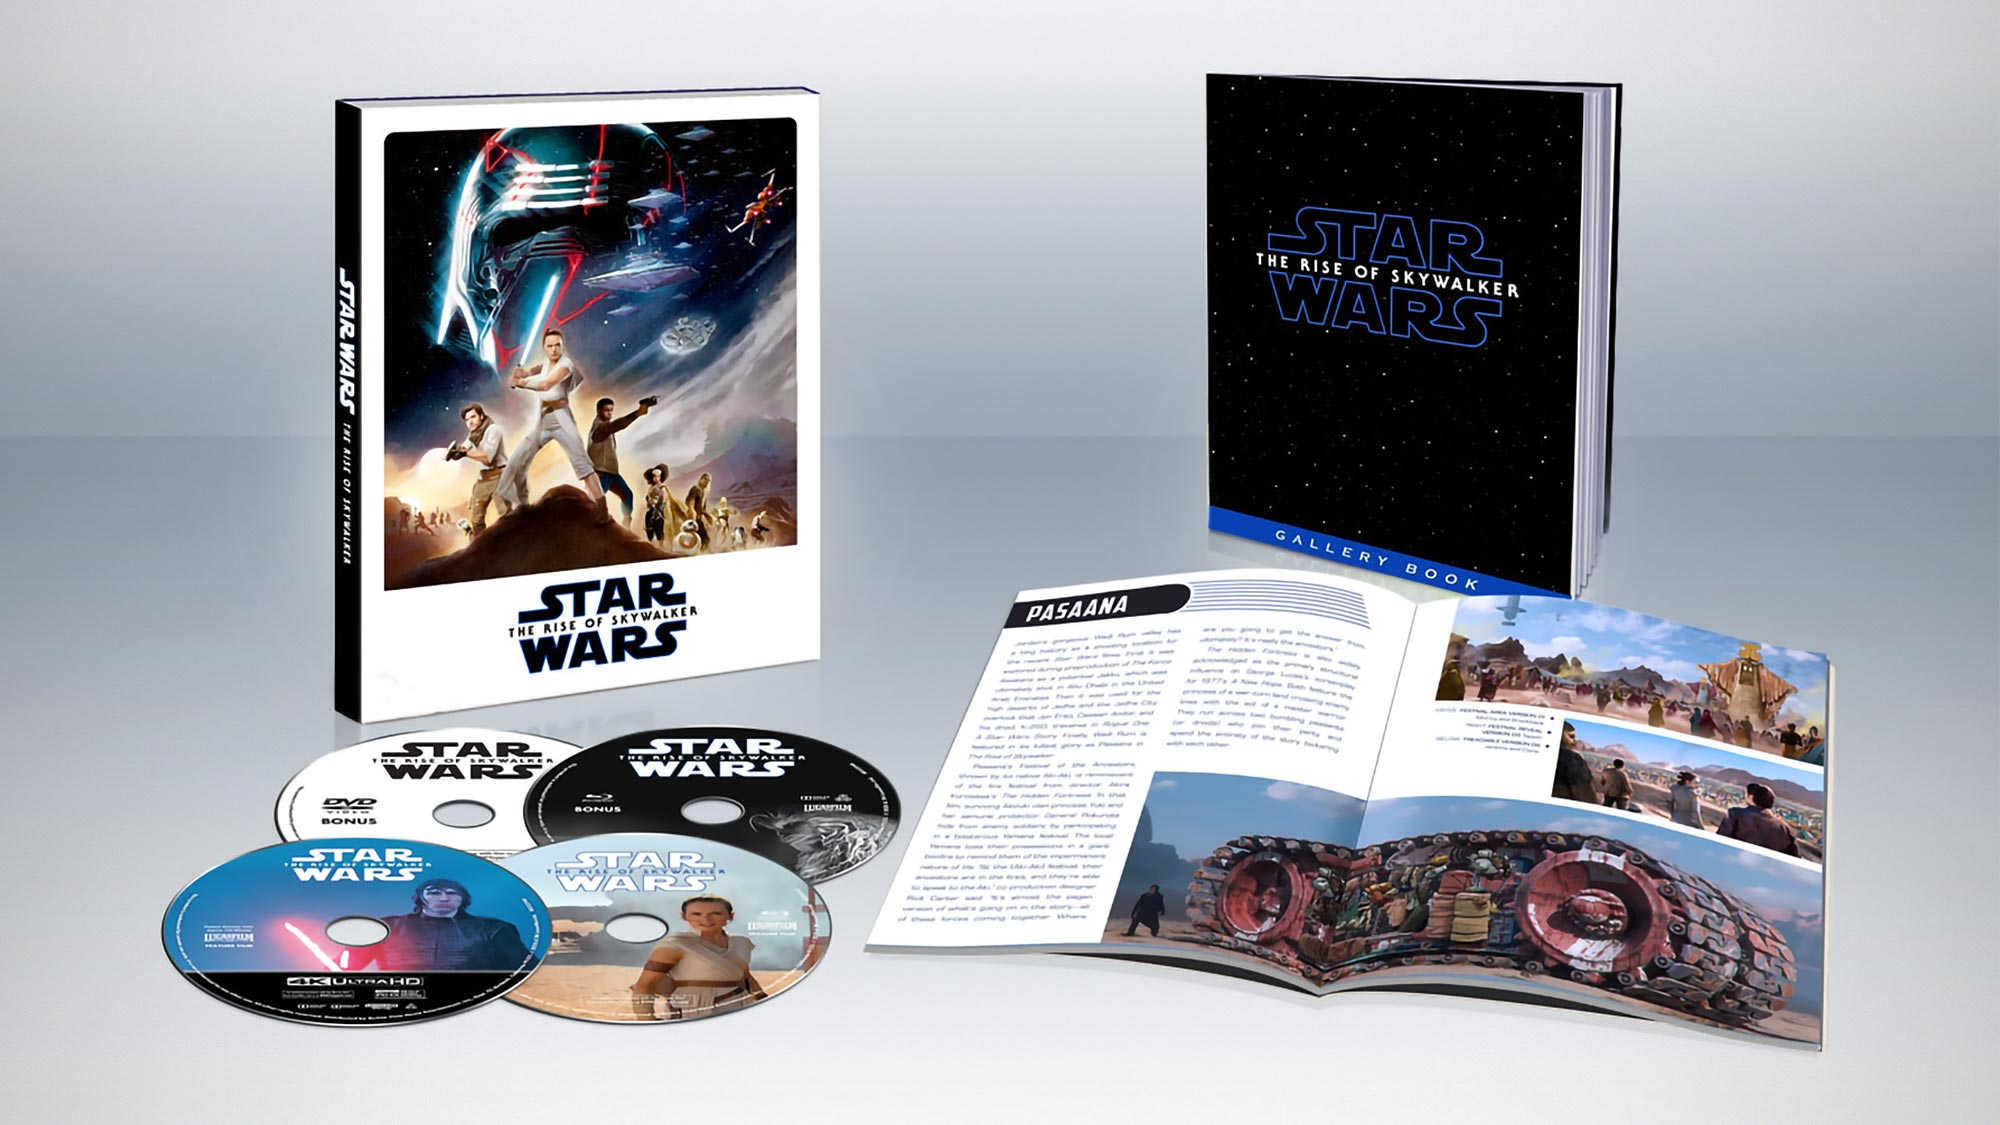 Here S The Entire List Of Star Wars The Rise Of Skywalker Blu Ray And Dvd Sets Money Can Buy Shouts